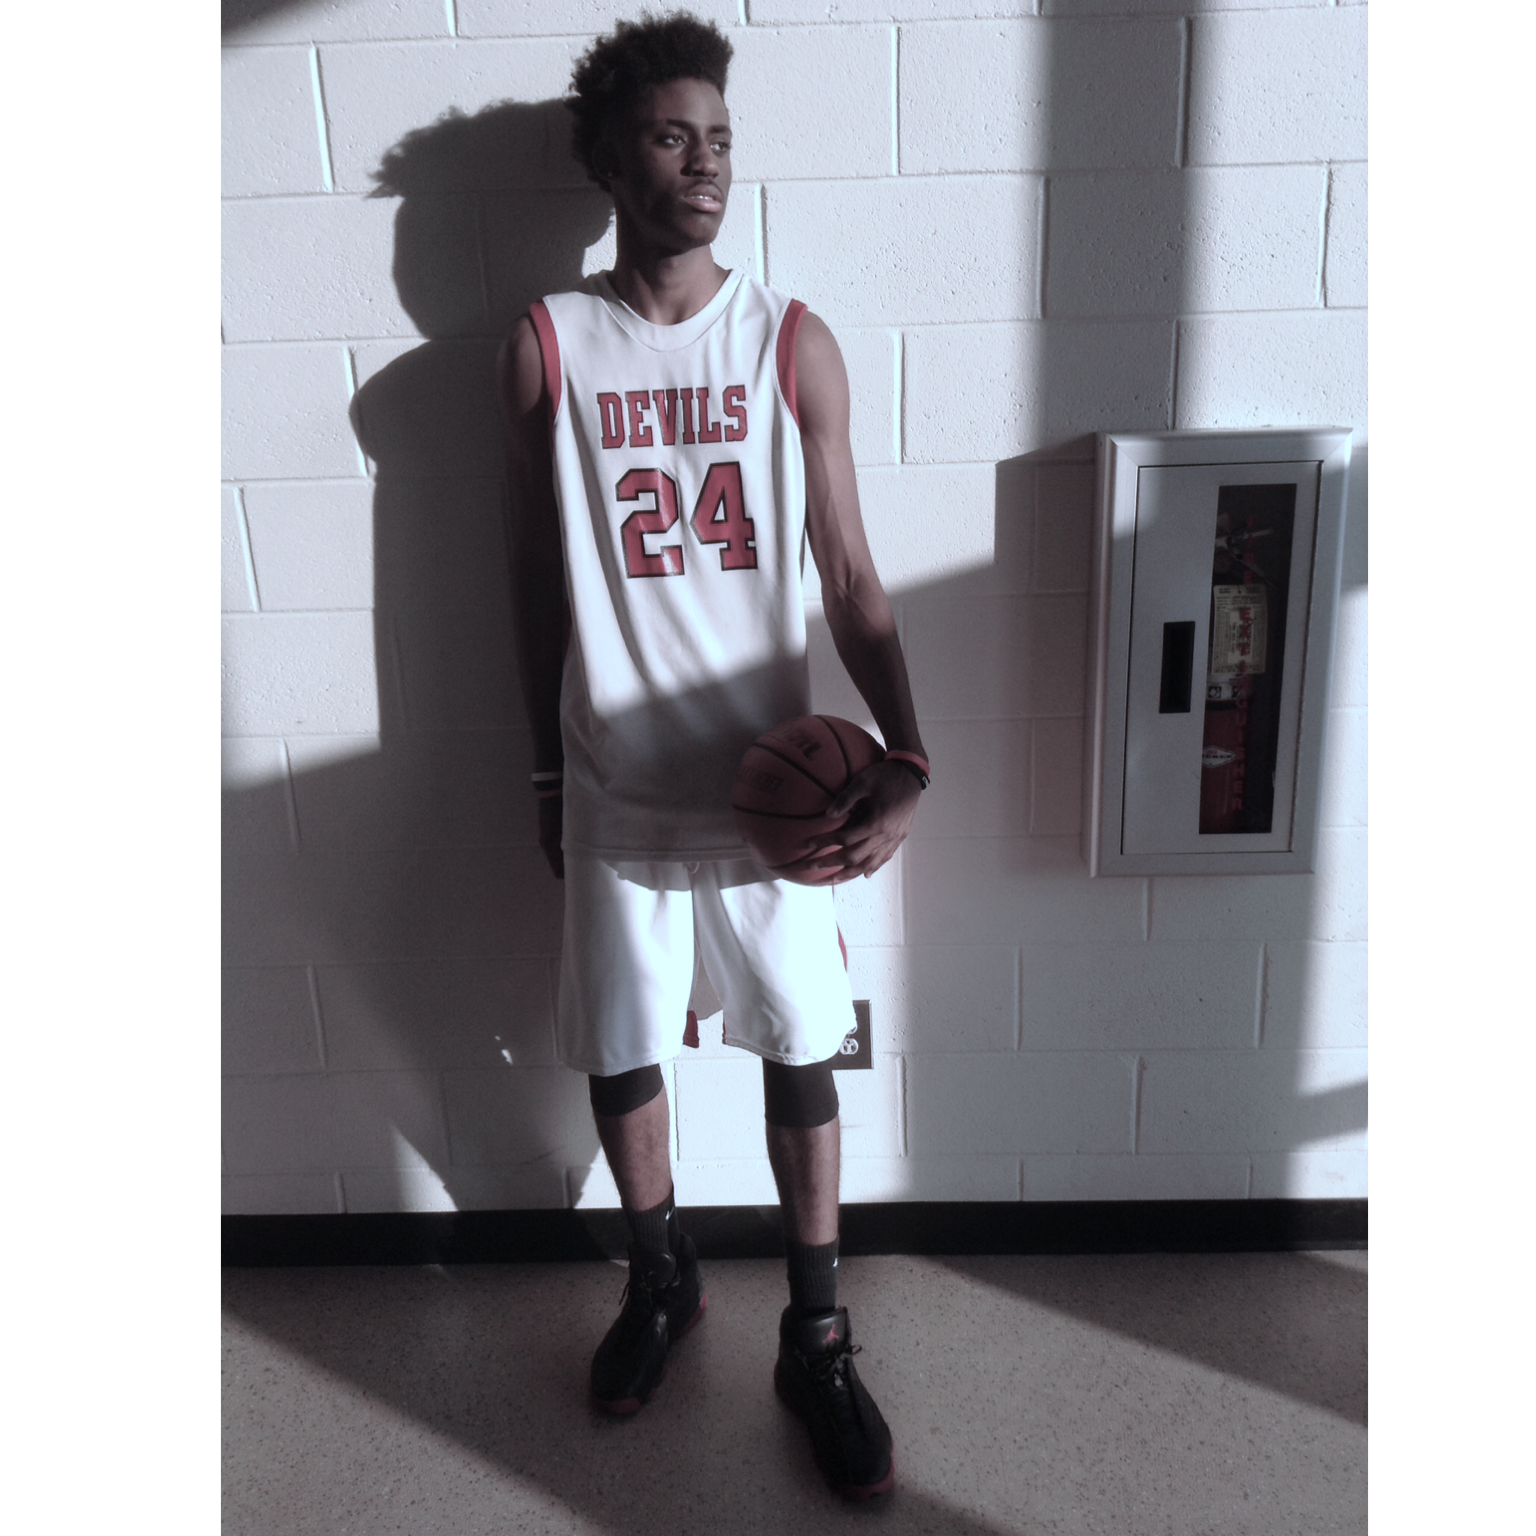 Ahmad Rand has overcome obstacles to become a premier '17 player